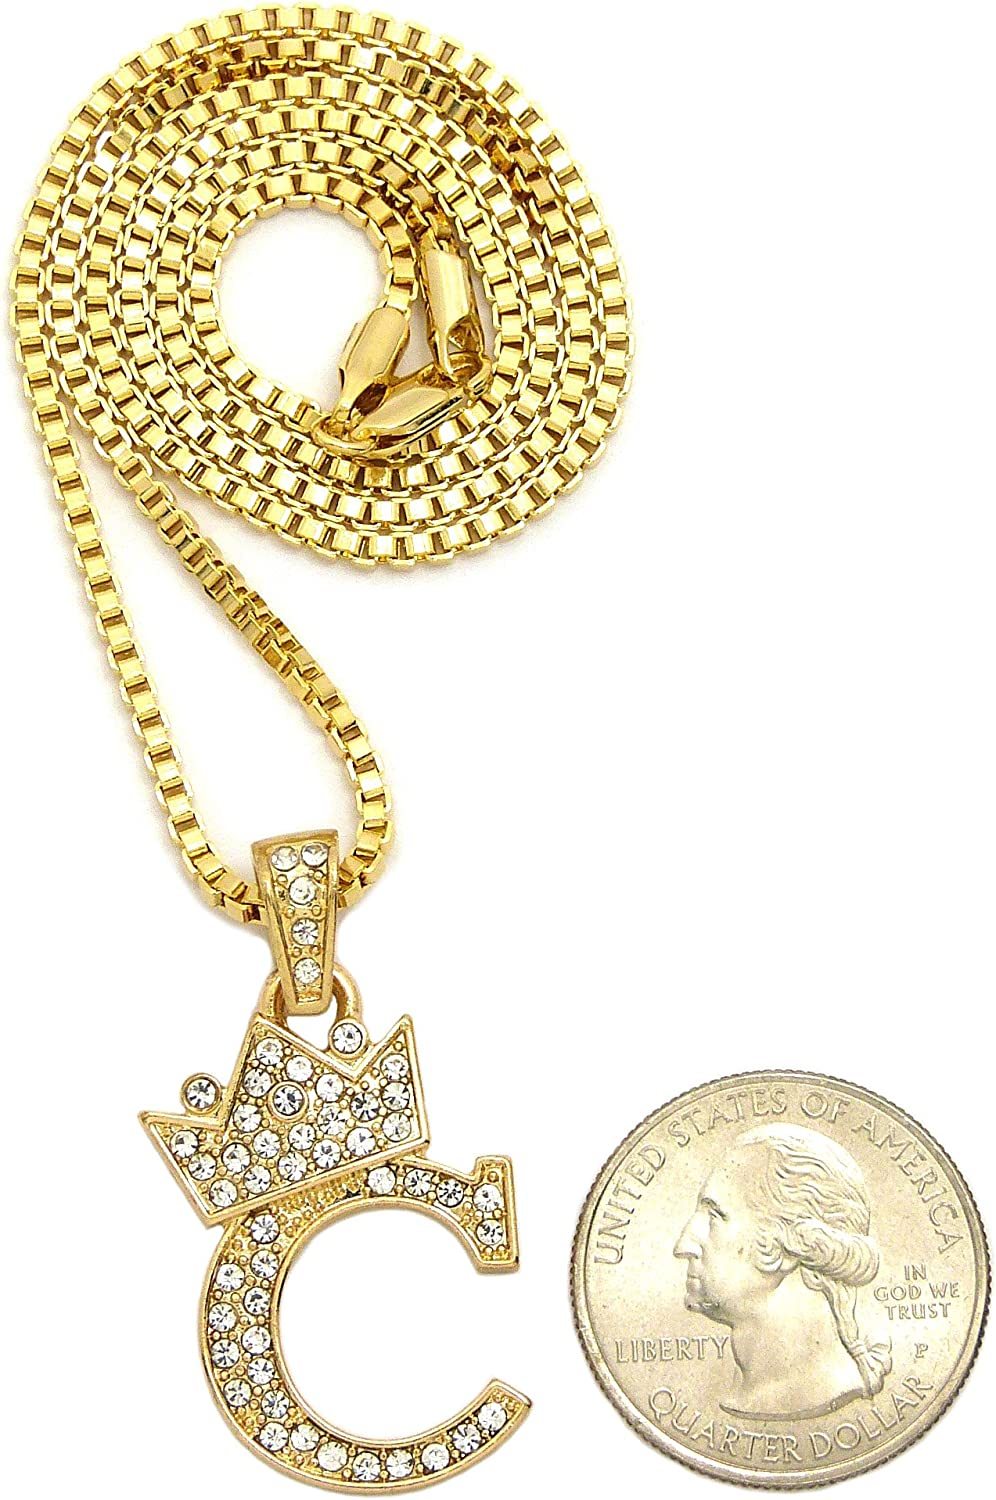 Simulated Diamond Studded Fashion Pendant Necklace in 14K Yellow Gold Plated With Box Chain